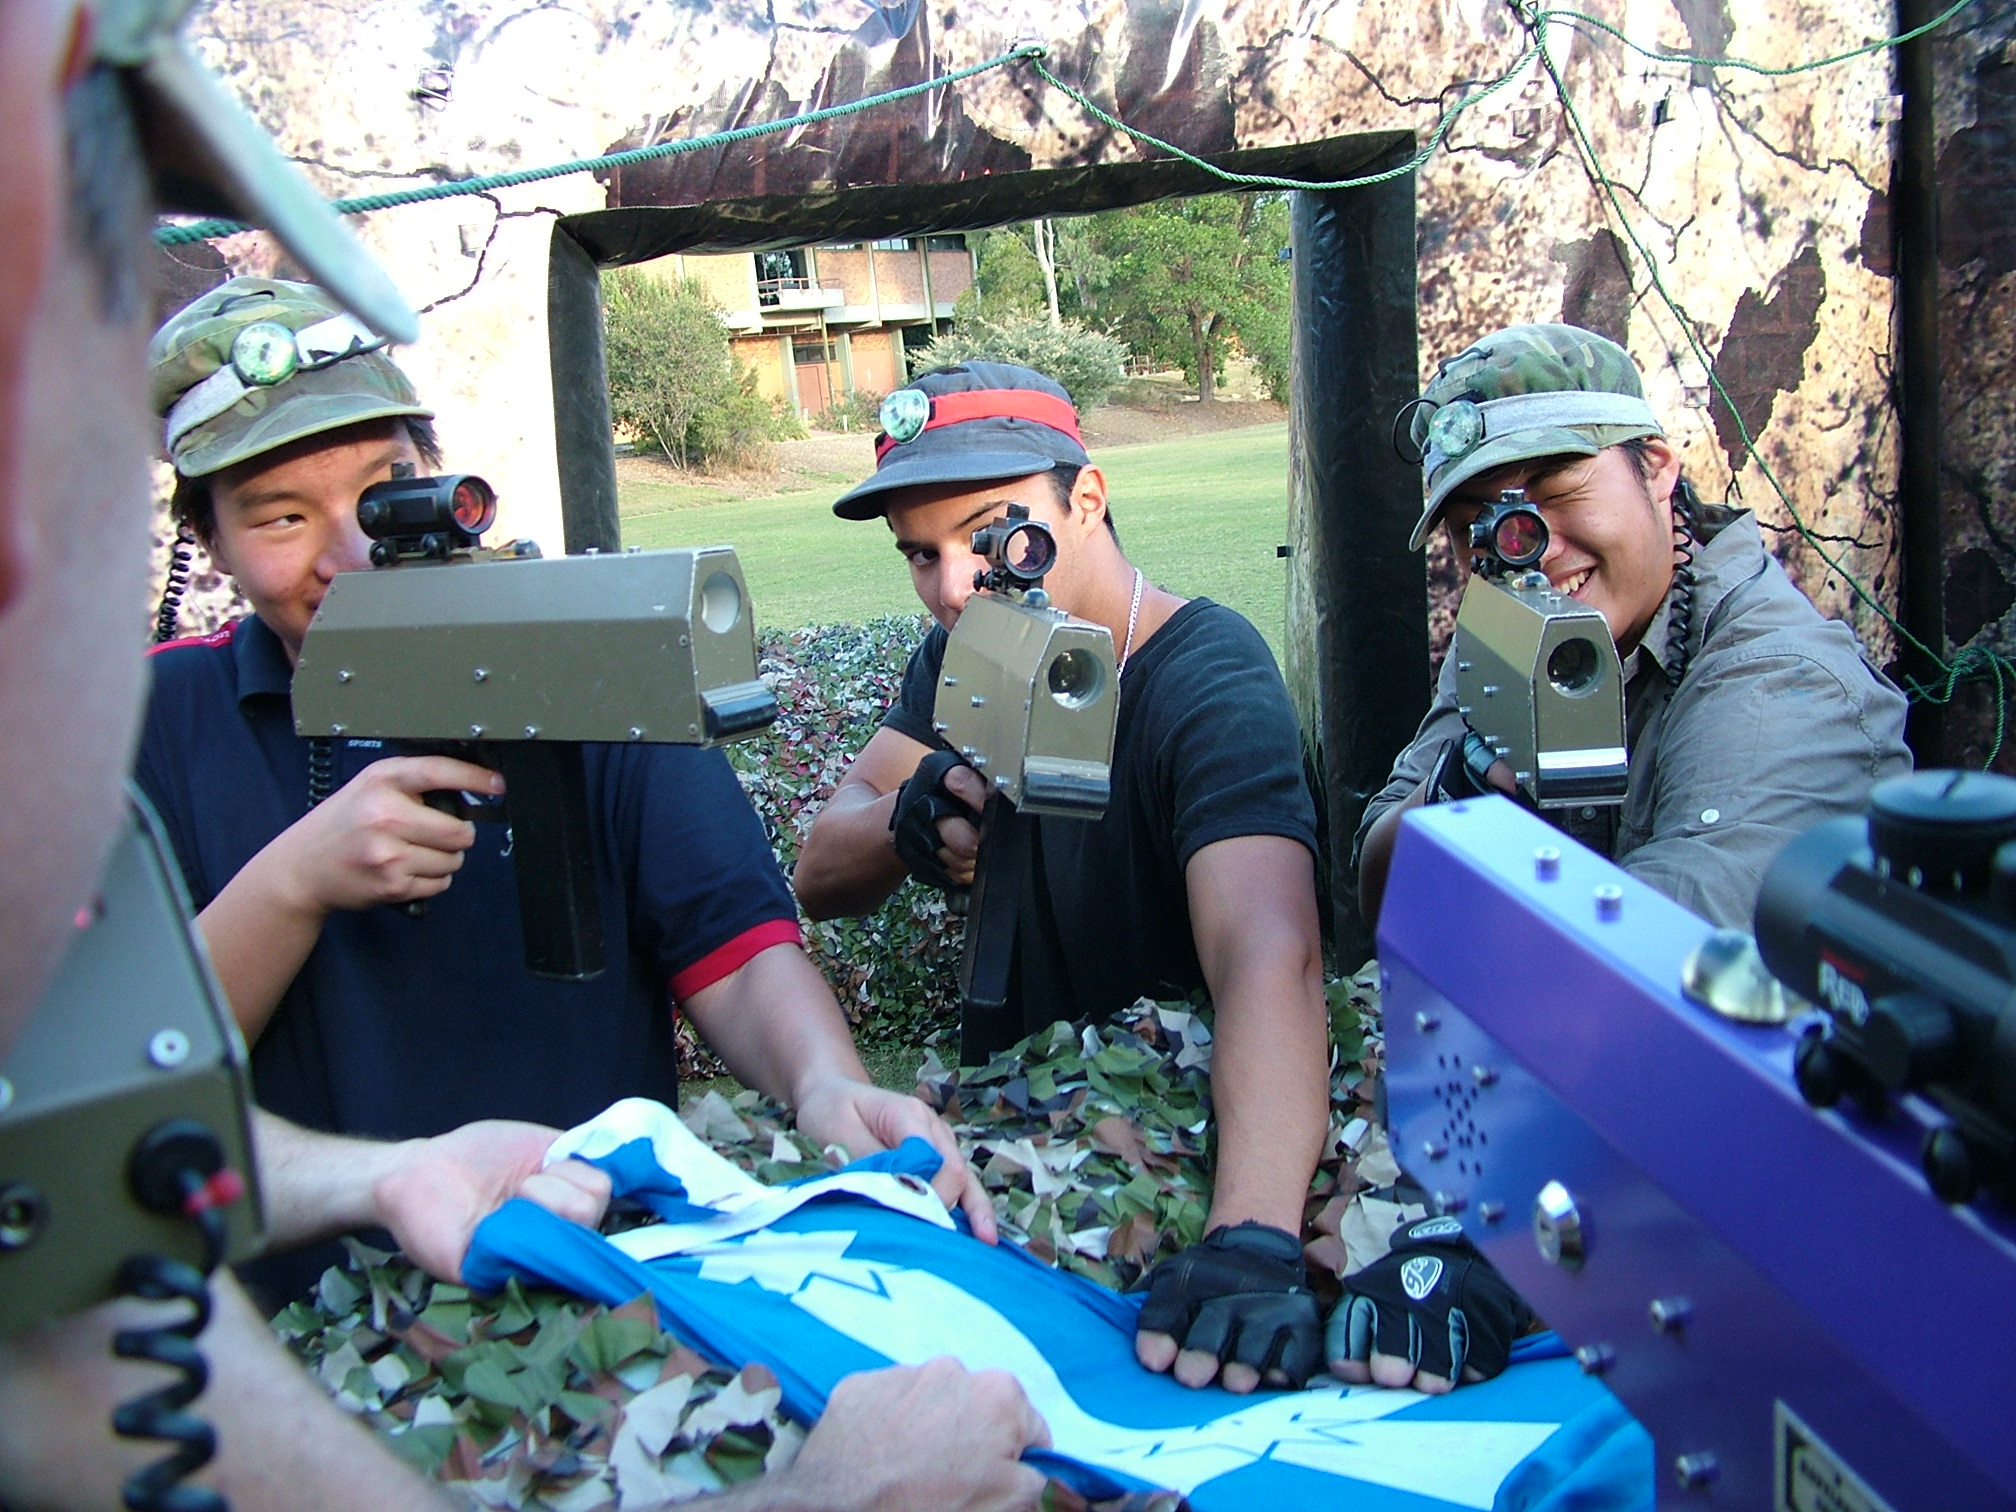 capture the flag - mobile laser tag